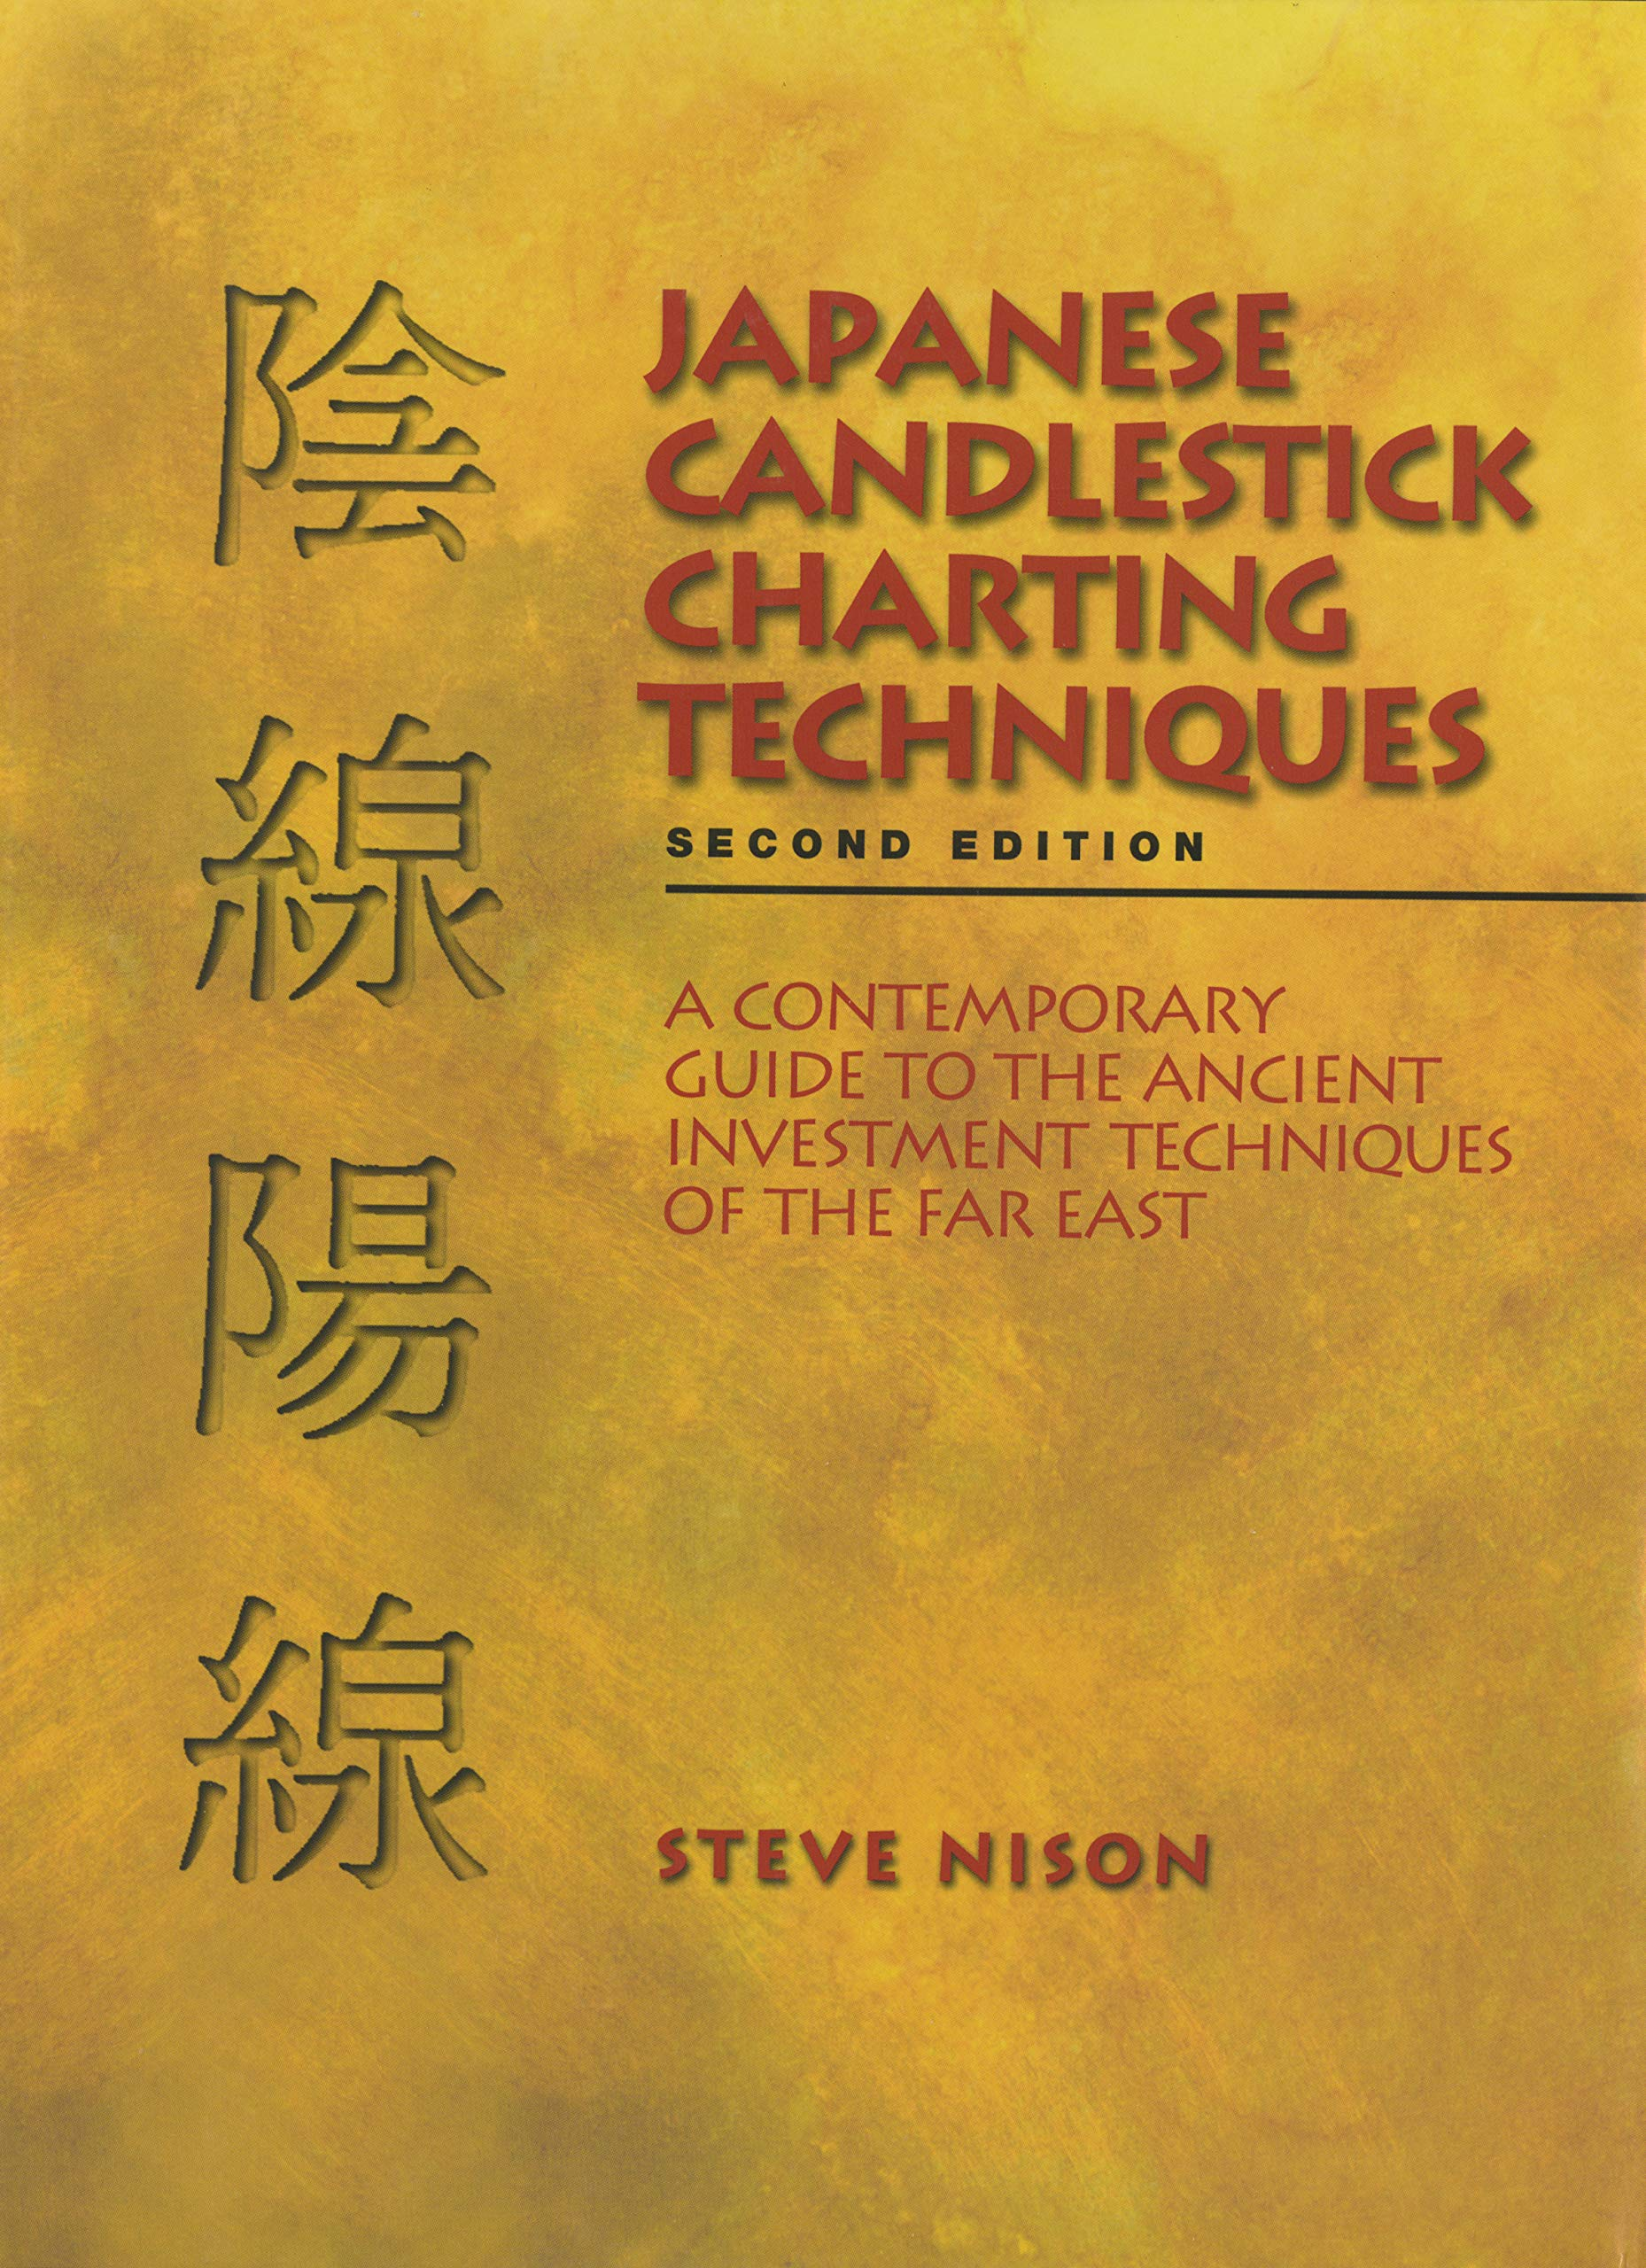 Buy Japanese Candlestick Charting Techniques Book Online at